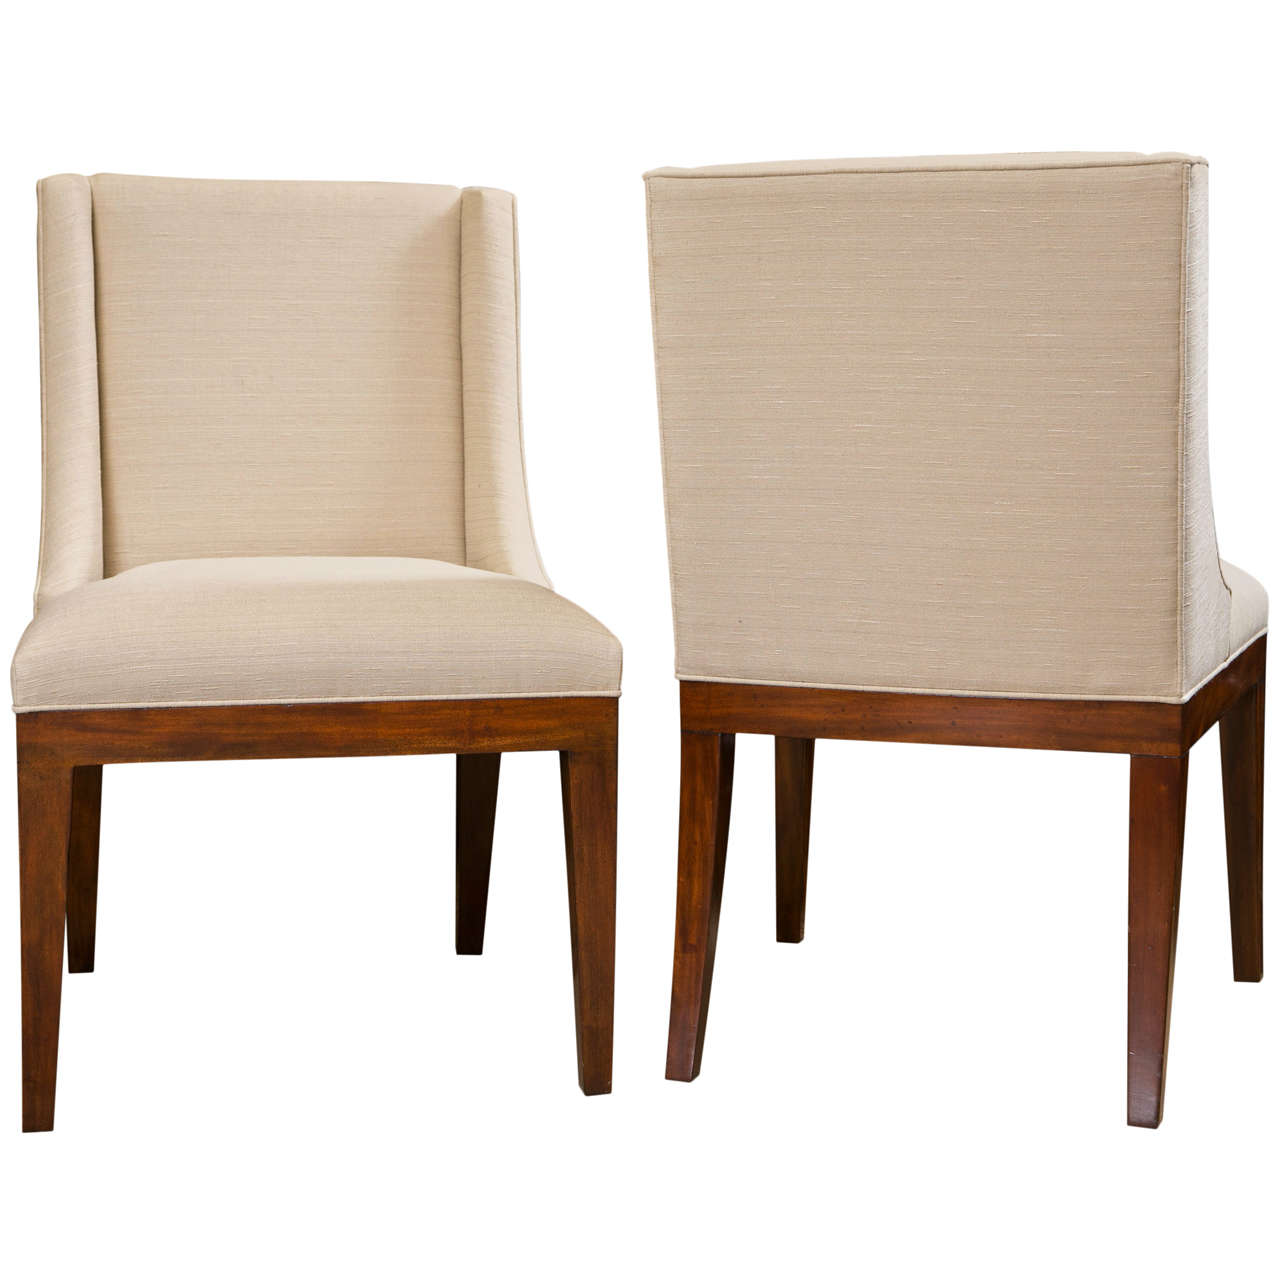 Set of 6 classic modern upholstered dining chairs at 1stdibs for Dining room upholstered bench